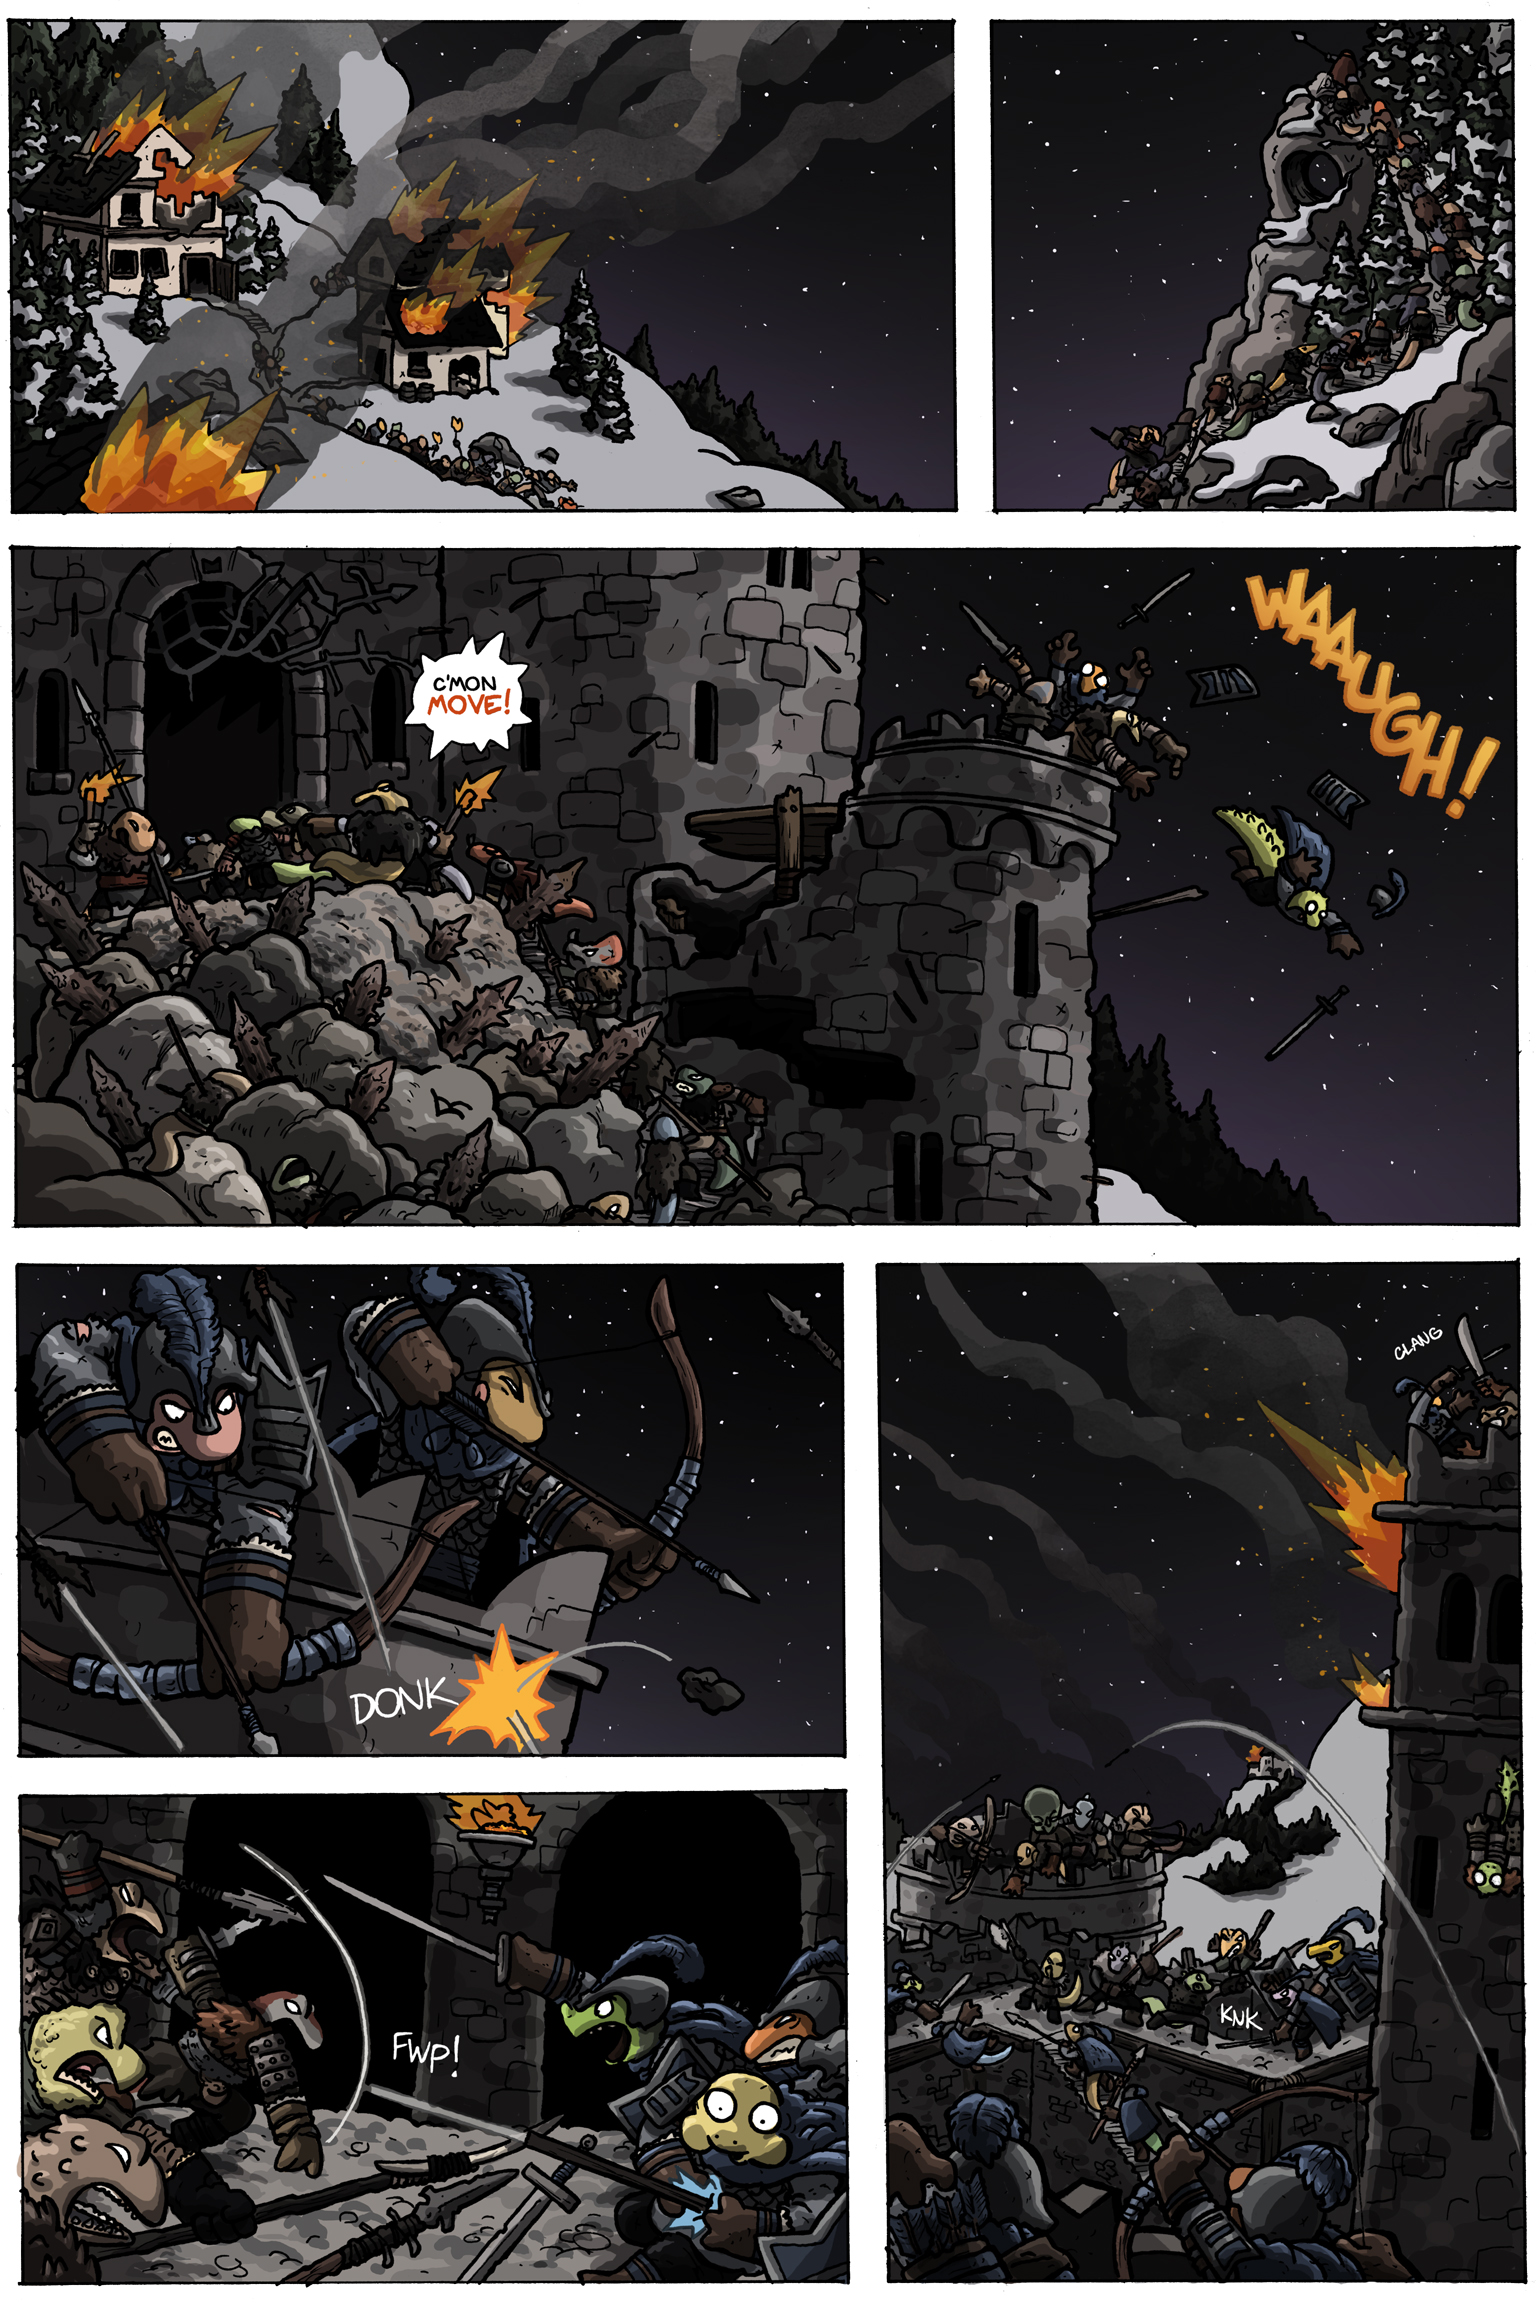 To view the webcomic in full please visit:   CharlieIronpaw.com